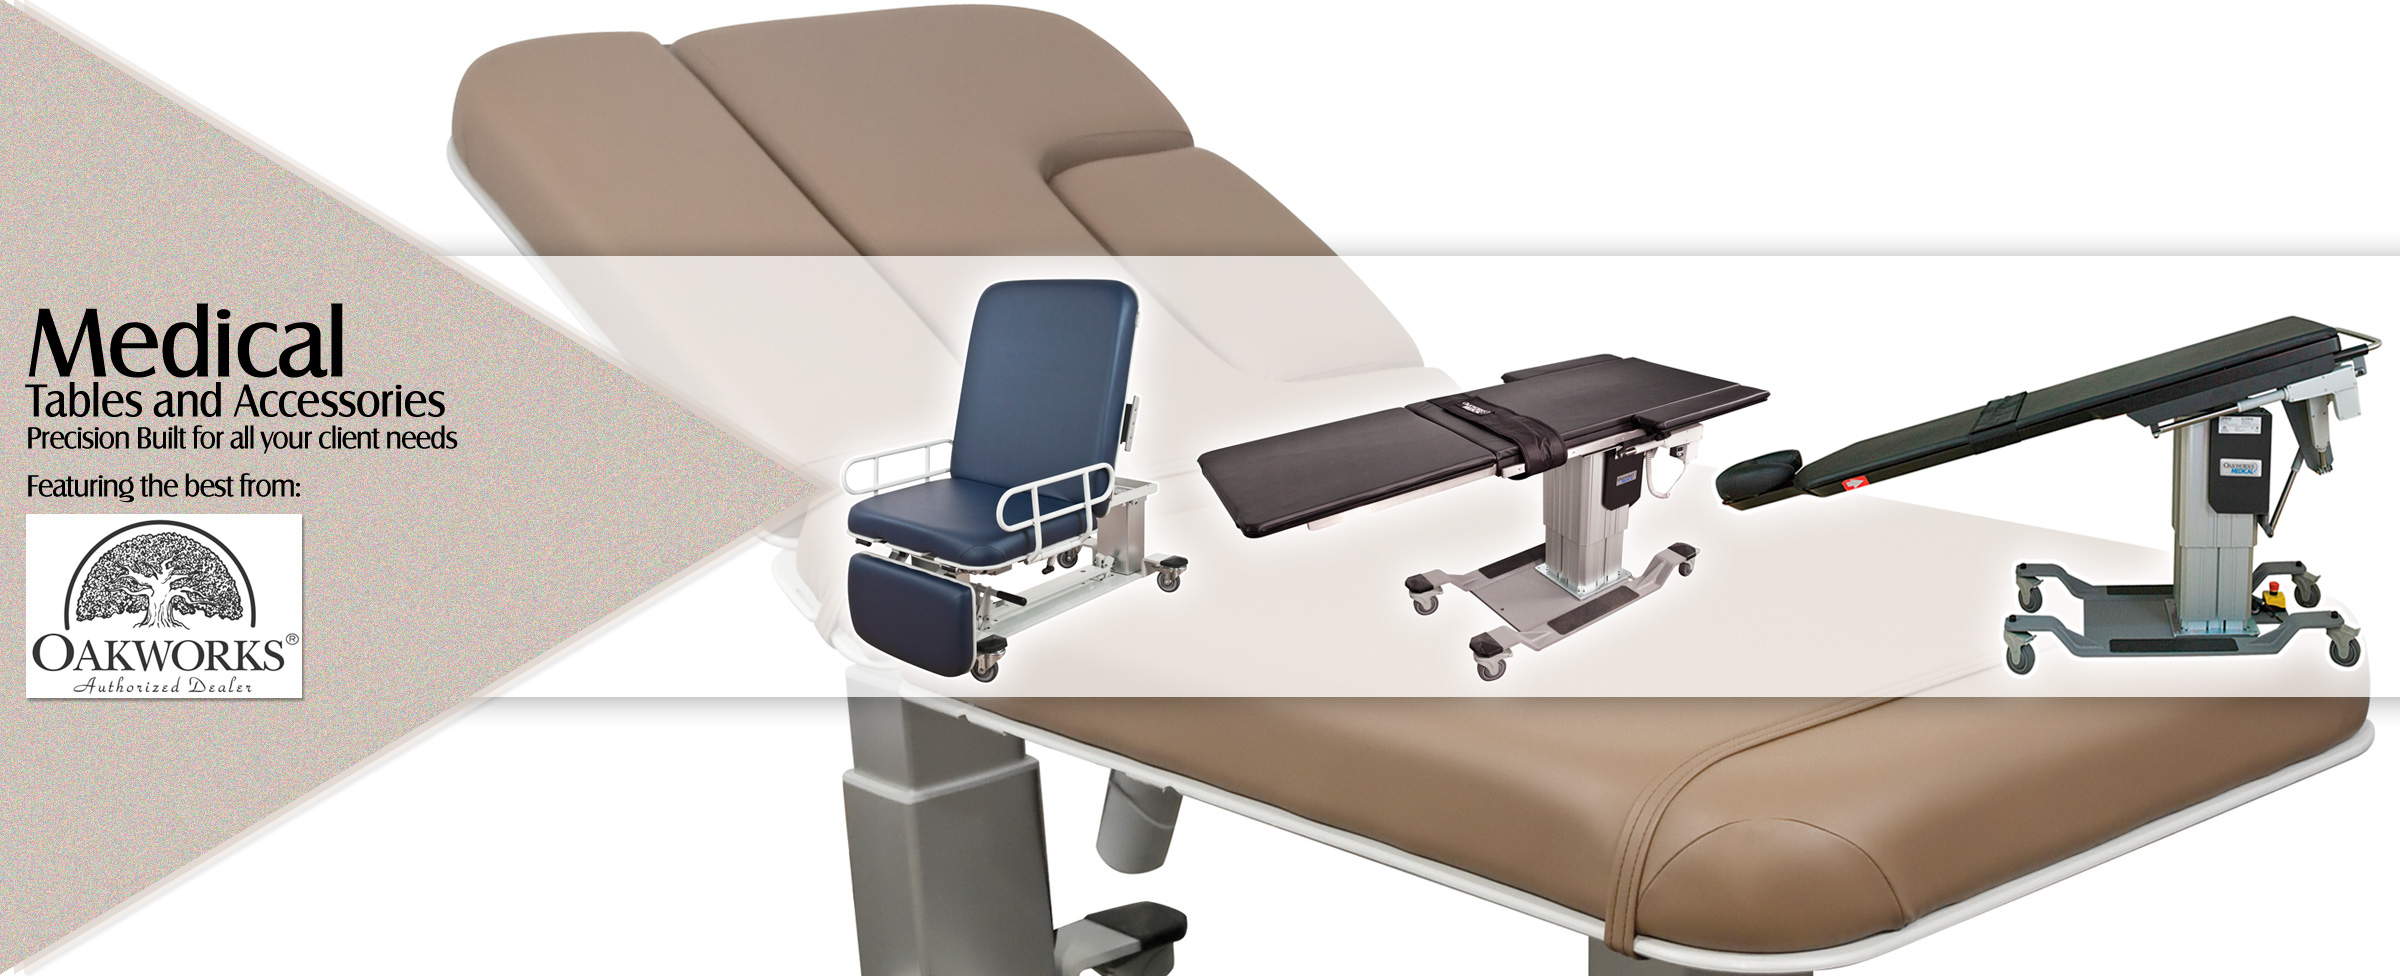 HFG International - Medical Tables and Accessories